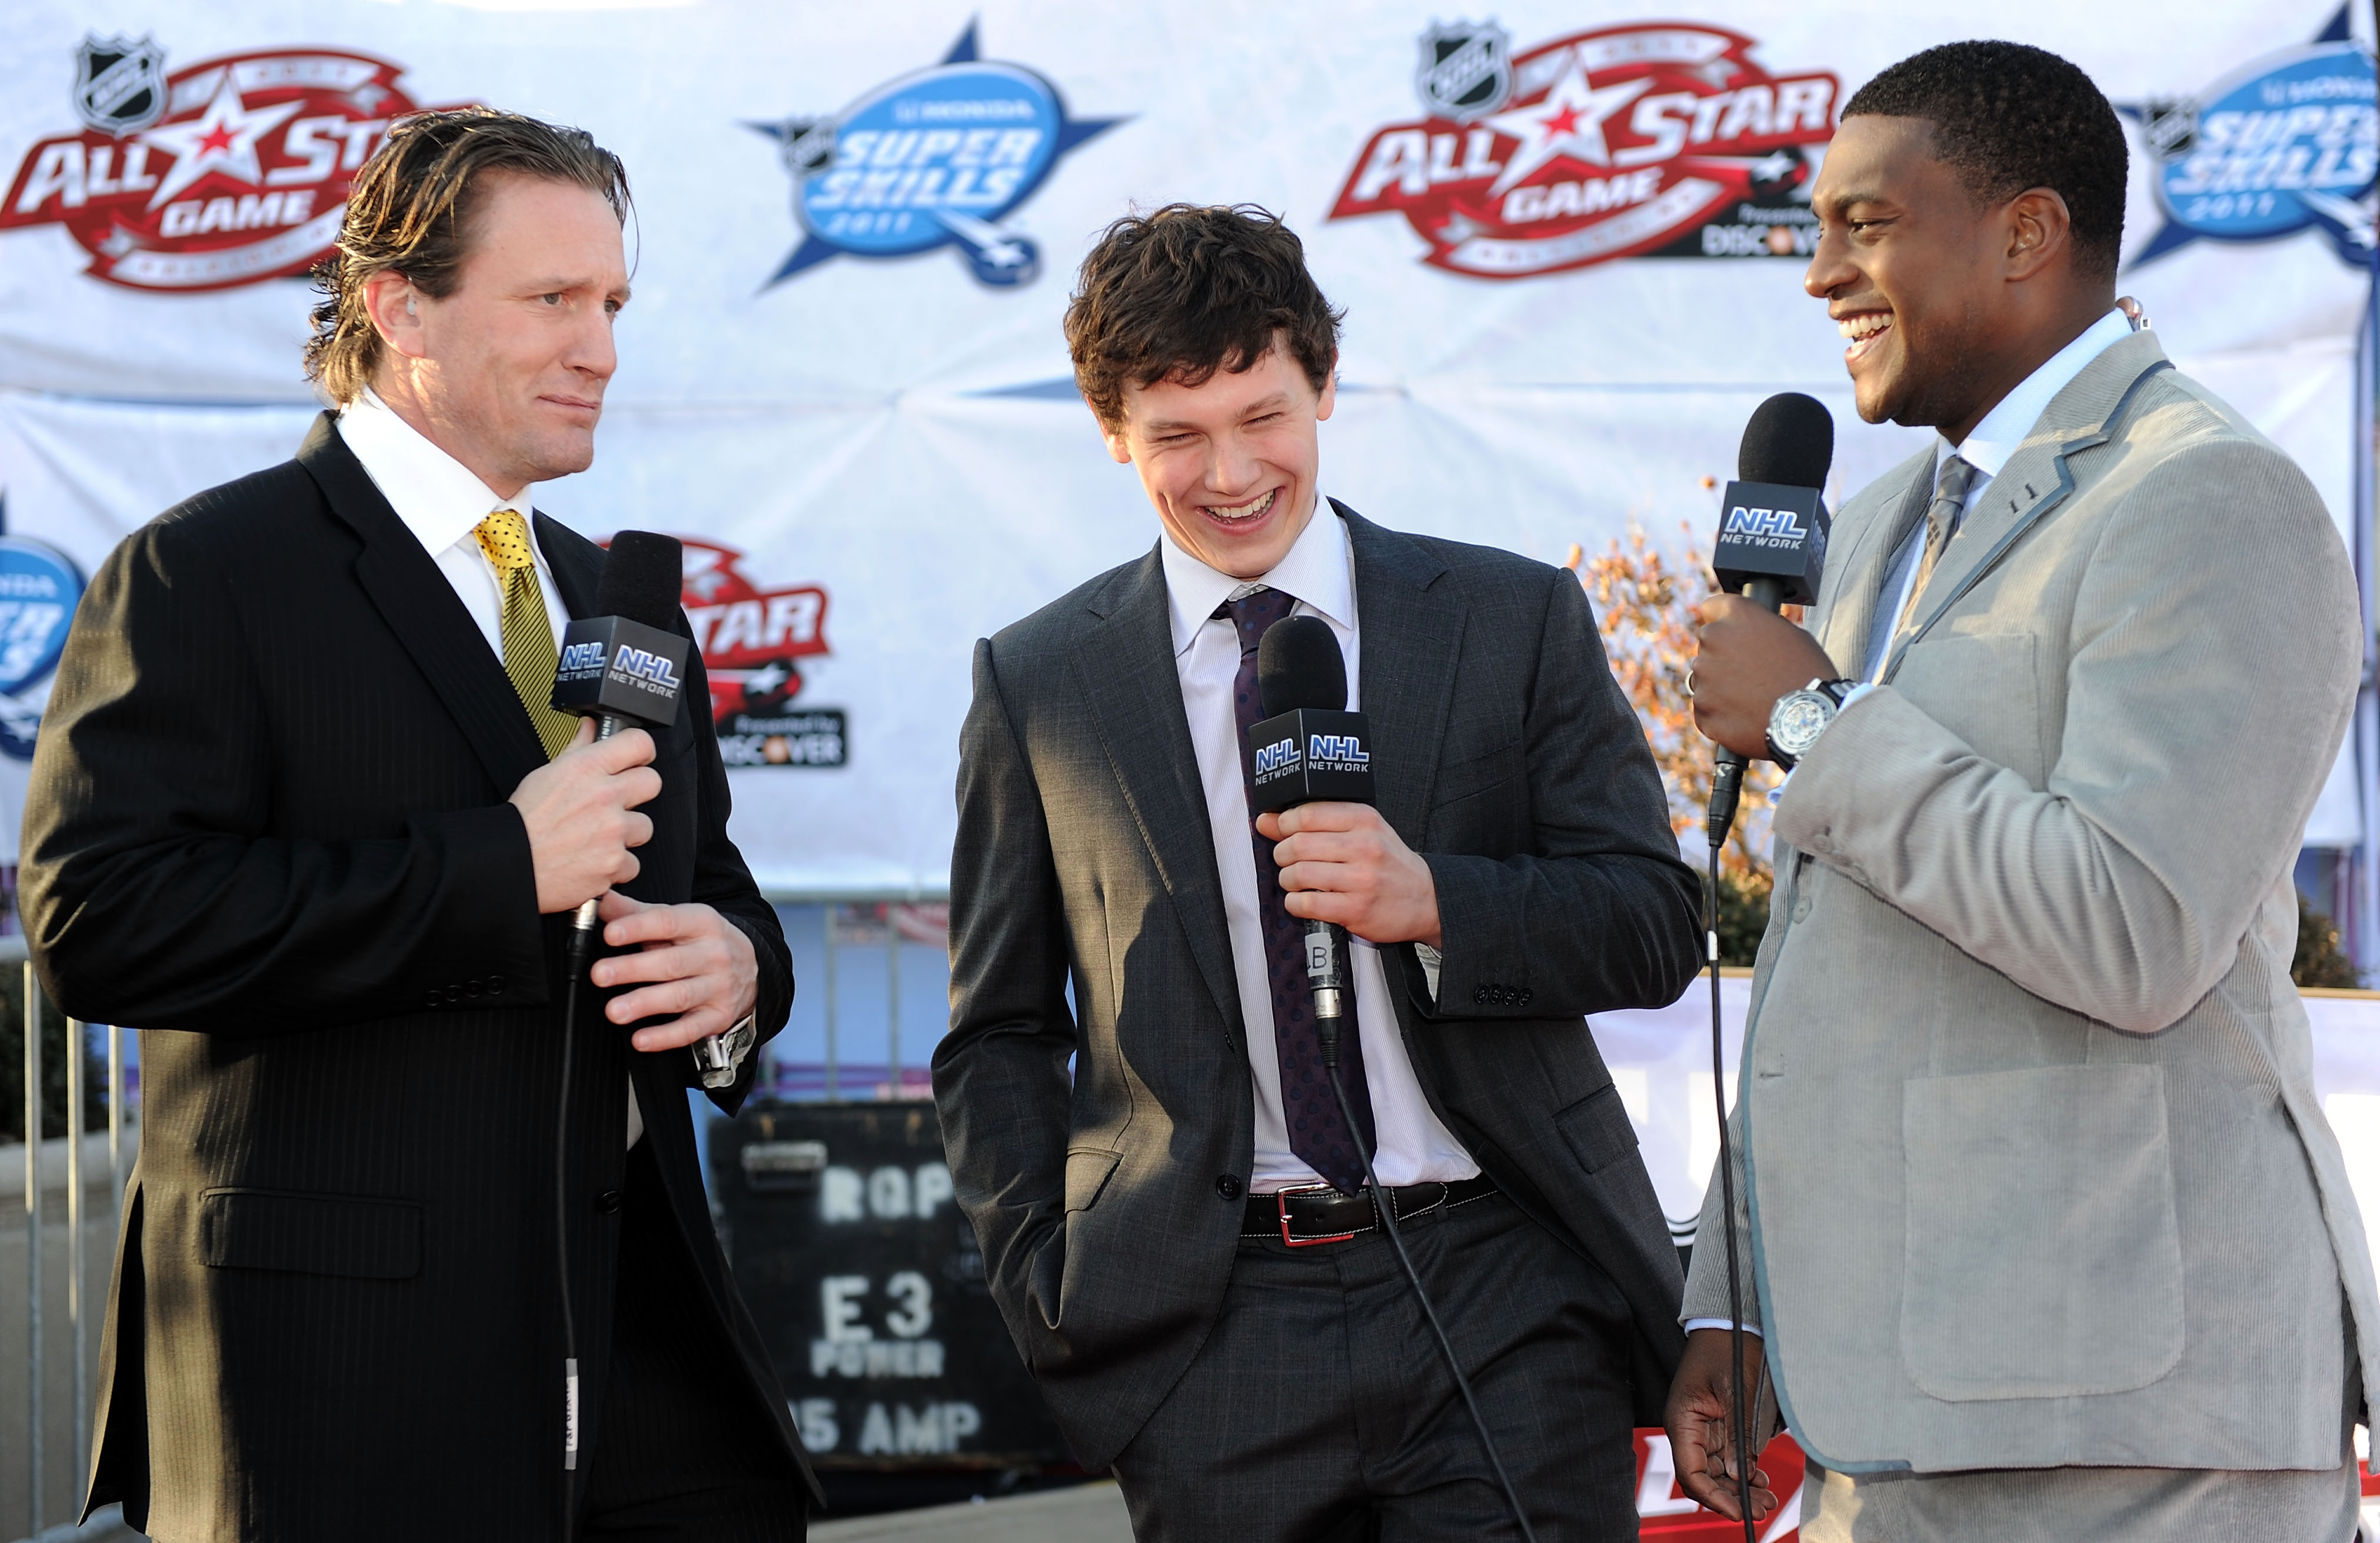 RALEIGH, NC - JANUARY 29:  Jeff Skinner (C) of the Carolina Hurricanes for Team Staal speaks to Kevin Weekes (R) and Jeremy Roenick as he arrives at the NHL All-Star red carpet part of 2011 NHL All-Star Weekend on January 29, 2011 in Raleigh, North Caroli